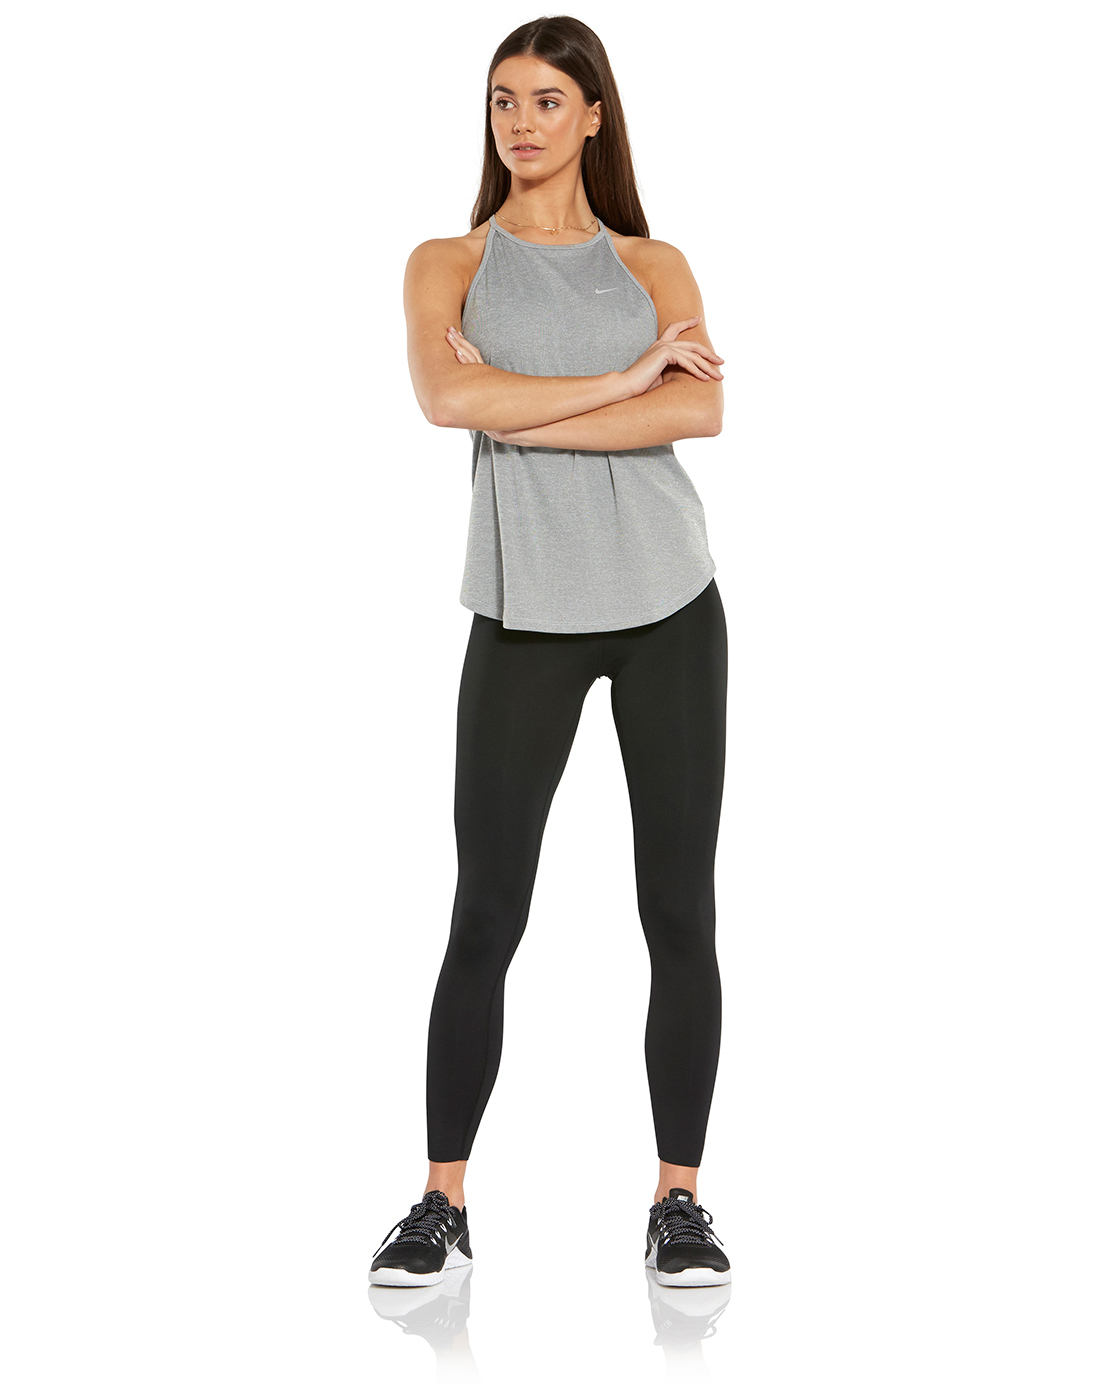 206bf0c7f8f90 Women's Black Nike Lux Crop Tights | Life Style Sports